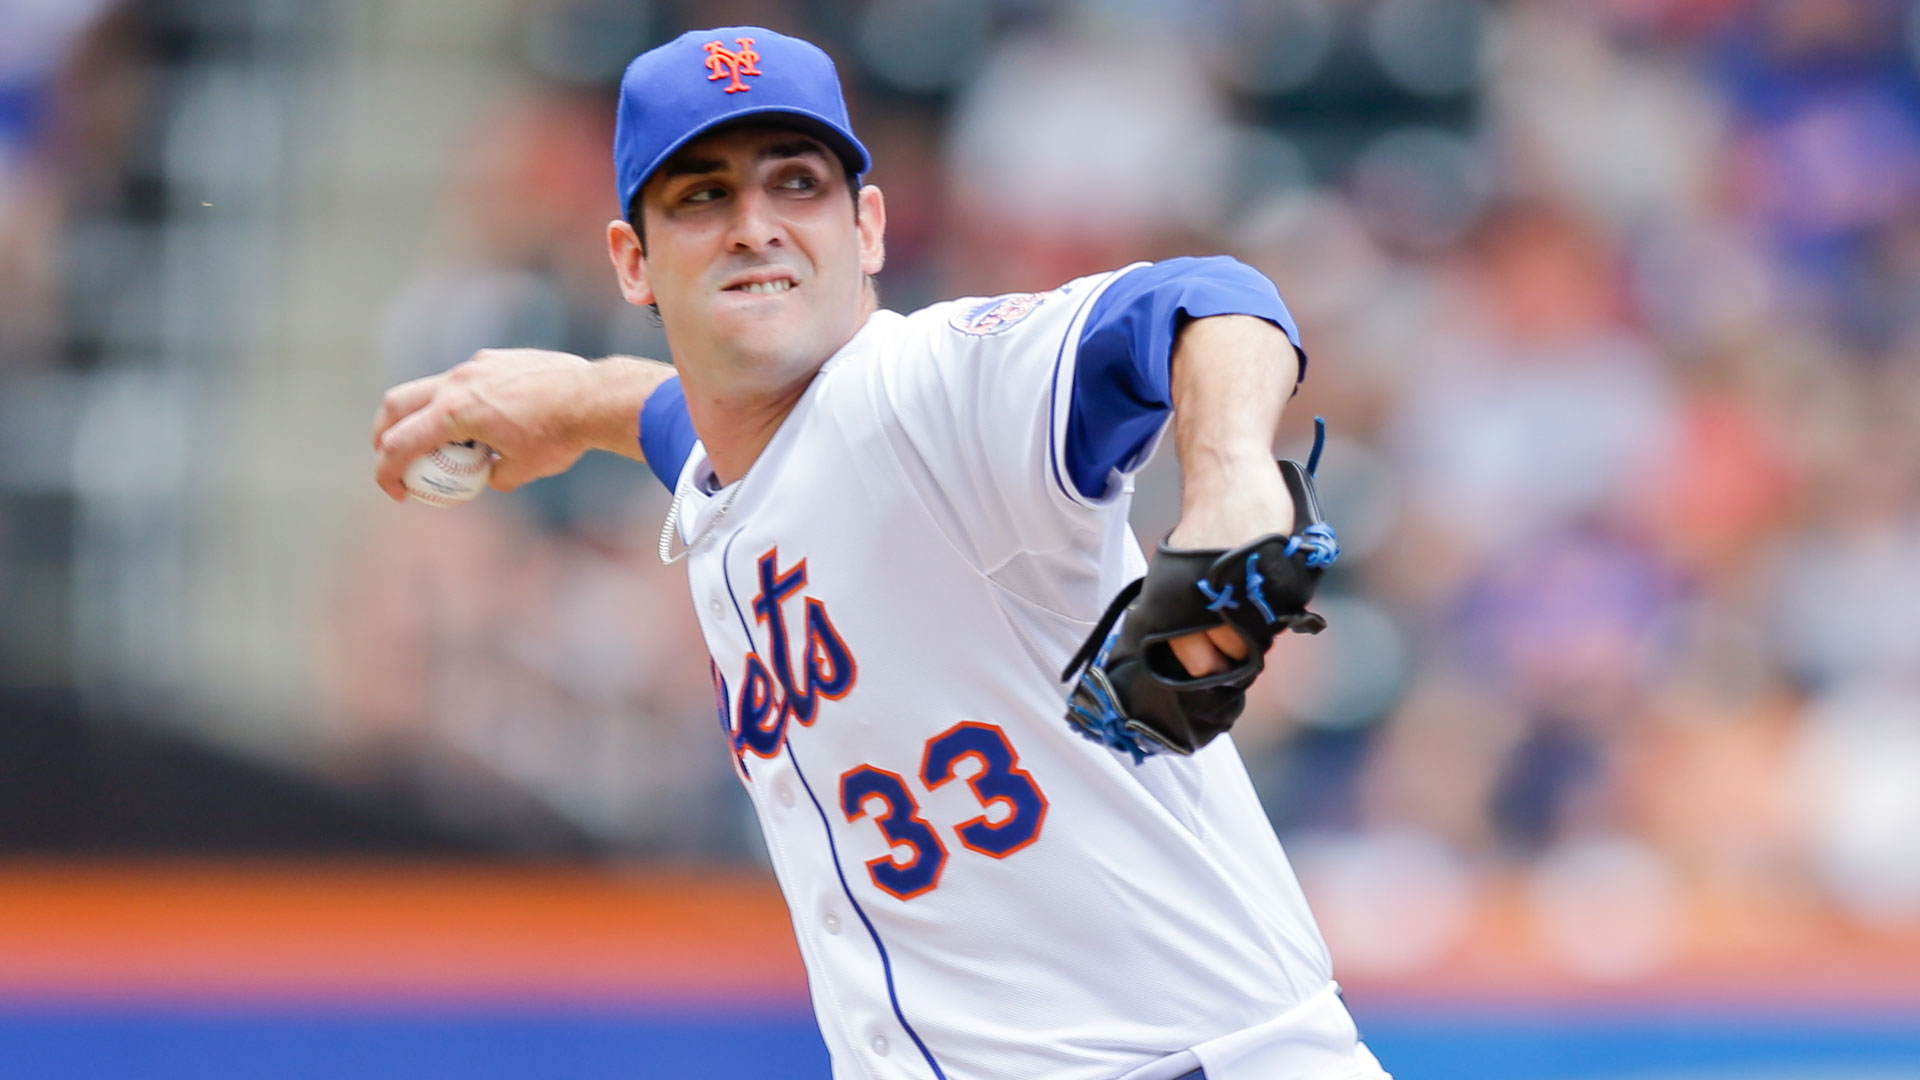 Matt Harvey-012314-AP-FTR.jpg